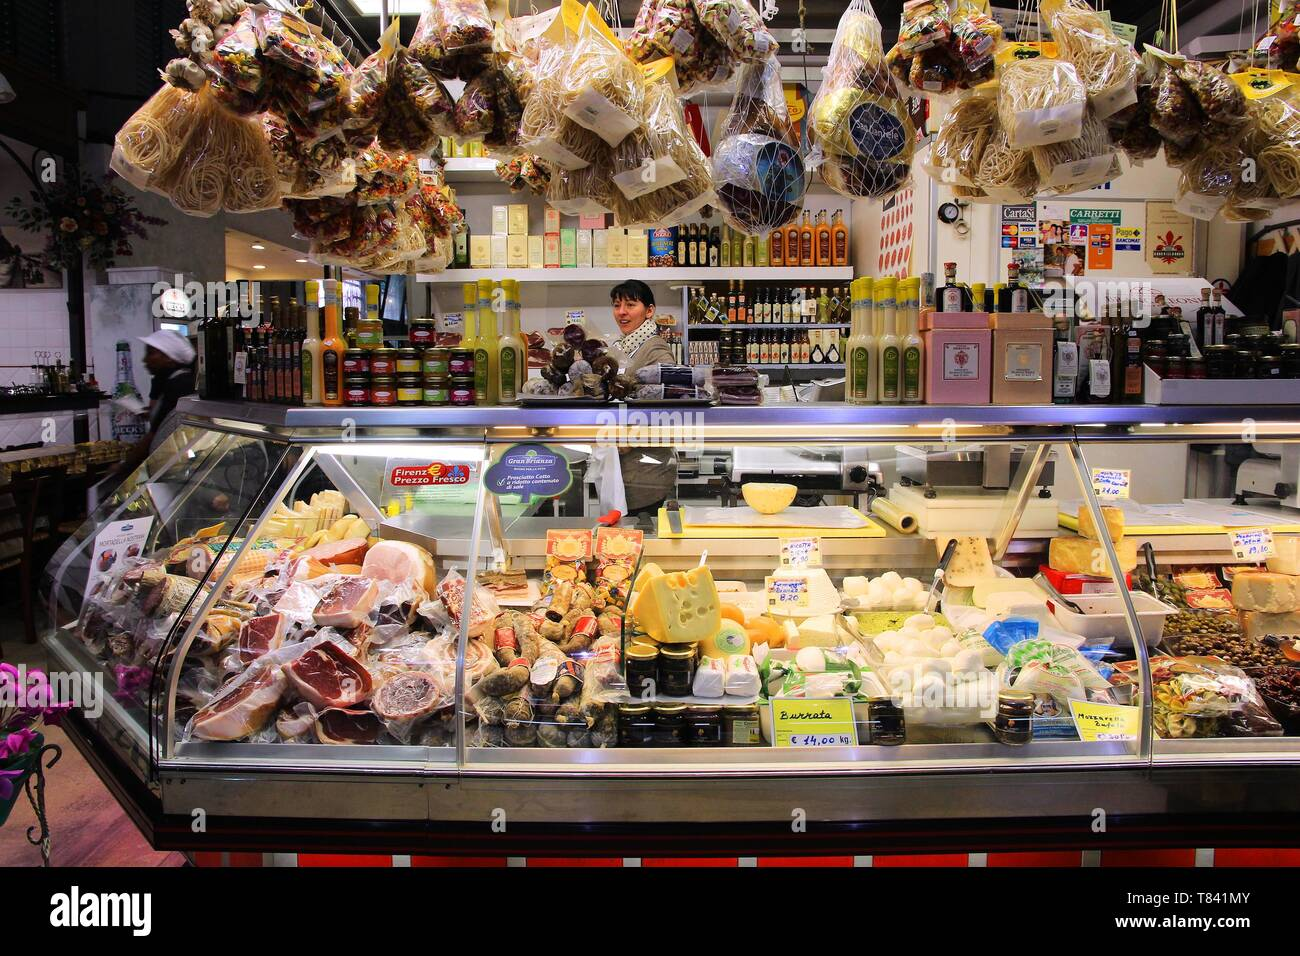 FLORENCE, ITALY - APRIL 30, 2015: Vendor sells cheese at Mercato Centrale market in Florence, Italy. The market is an ultimate Italian shopping experi - Stock Image